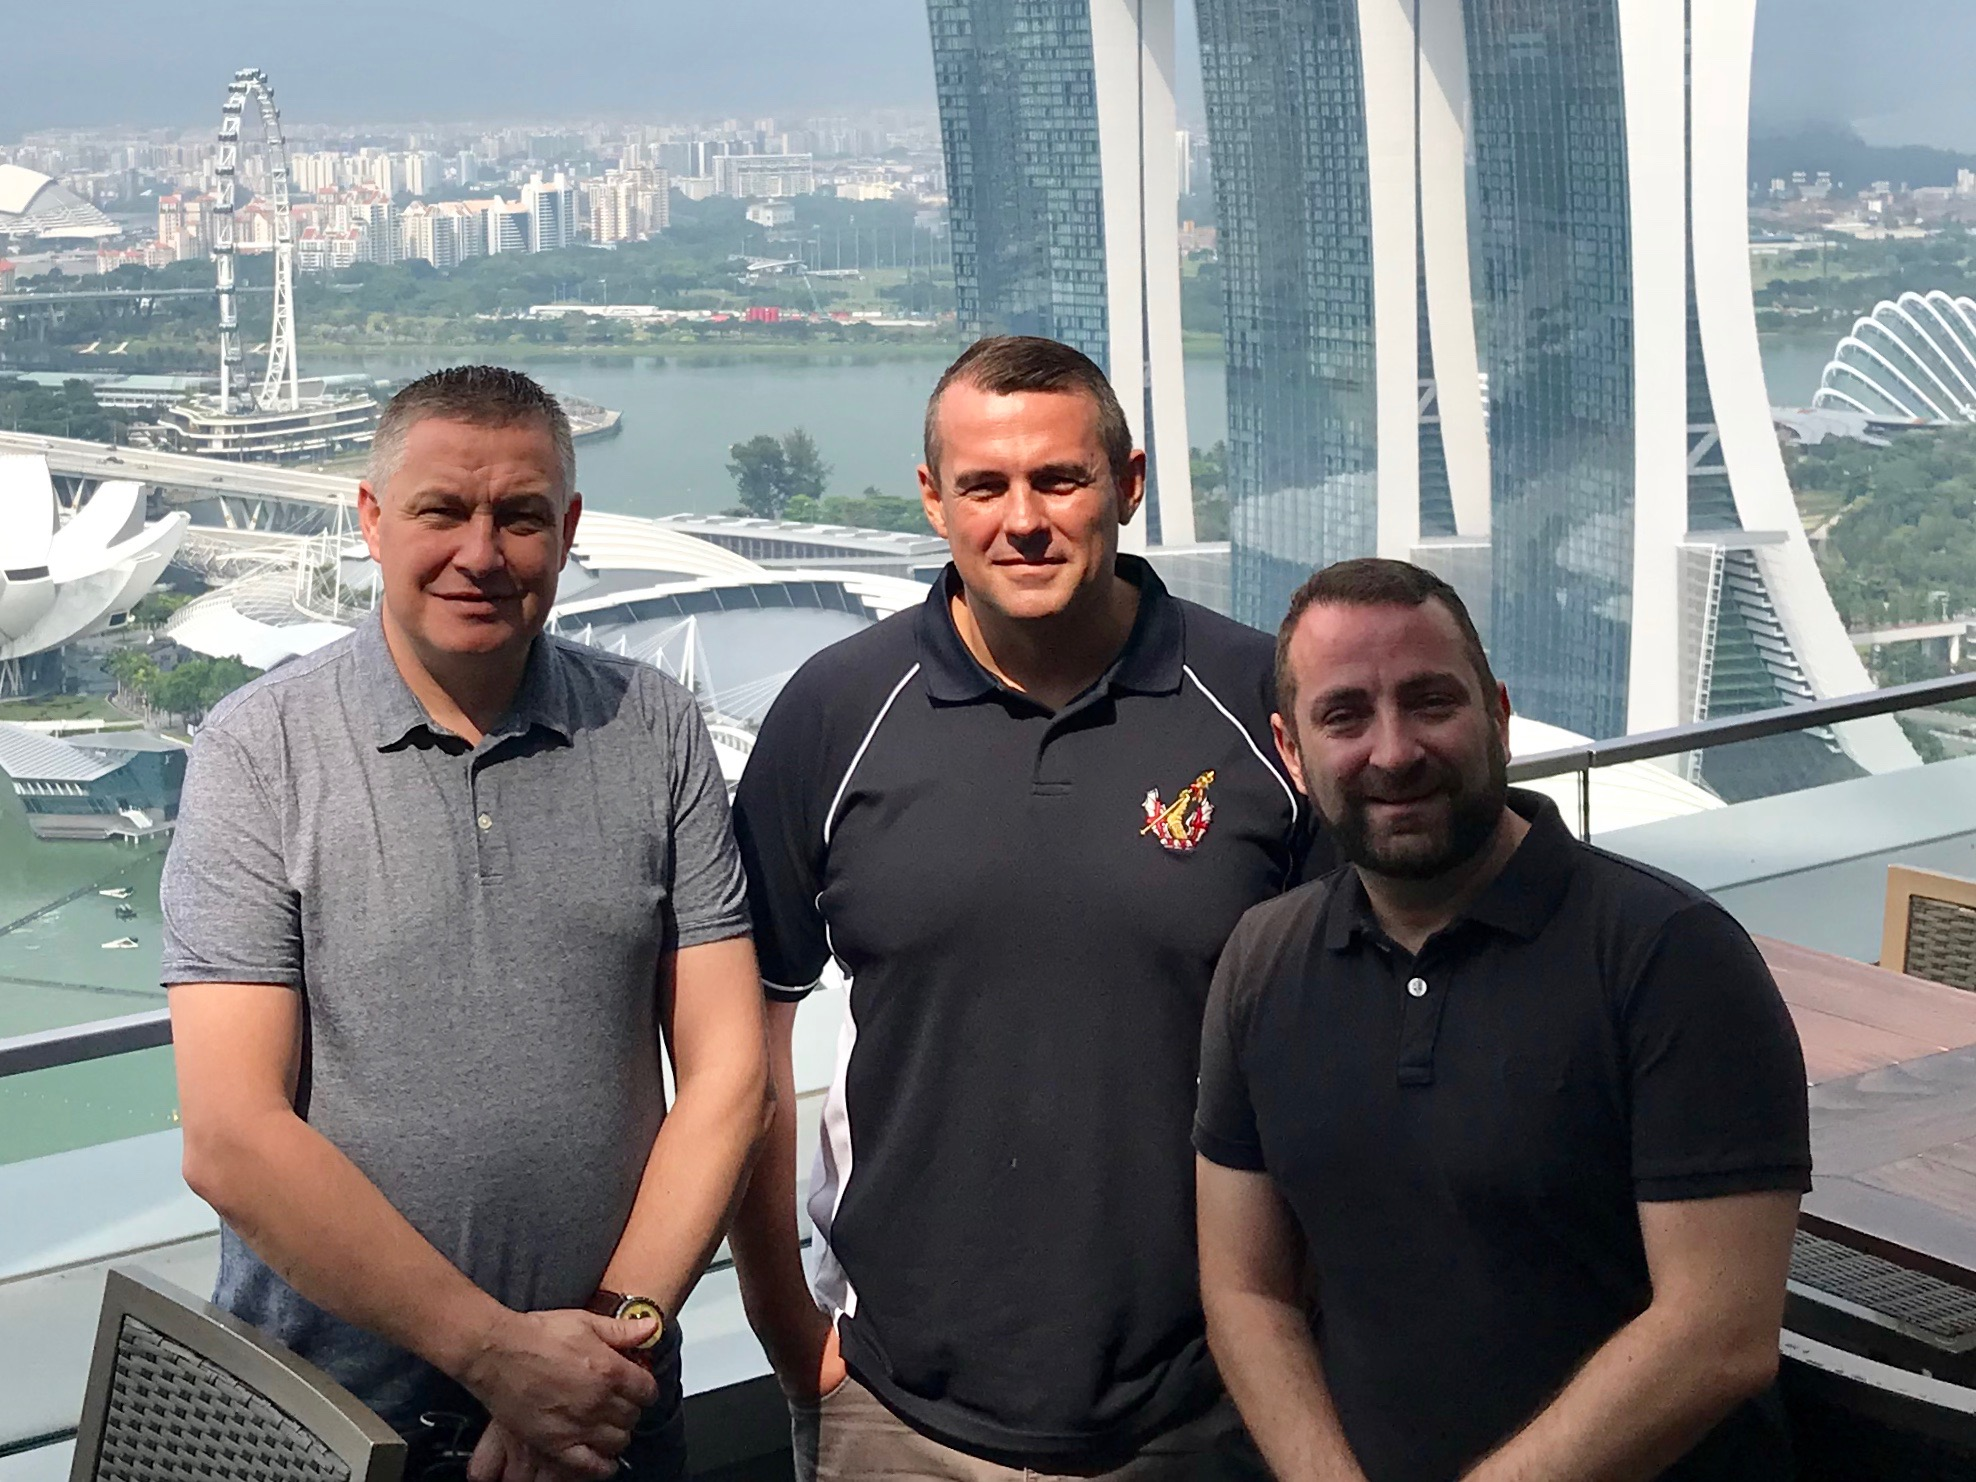 Neil Quinnell (Projects Director, Six Star Global), Chris Pearson (Director of Asian Operations, Six Star Asia), and Rich Stakounis (Director of Operations, Six Star Global).